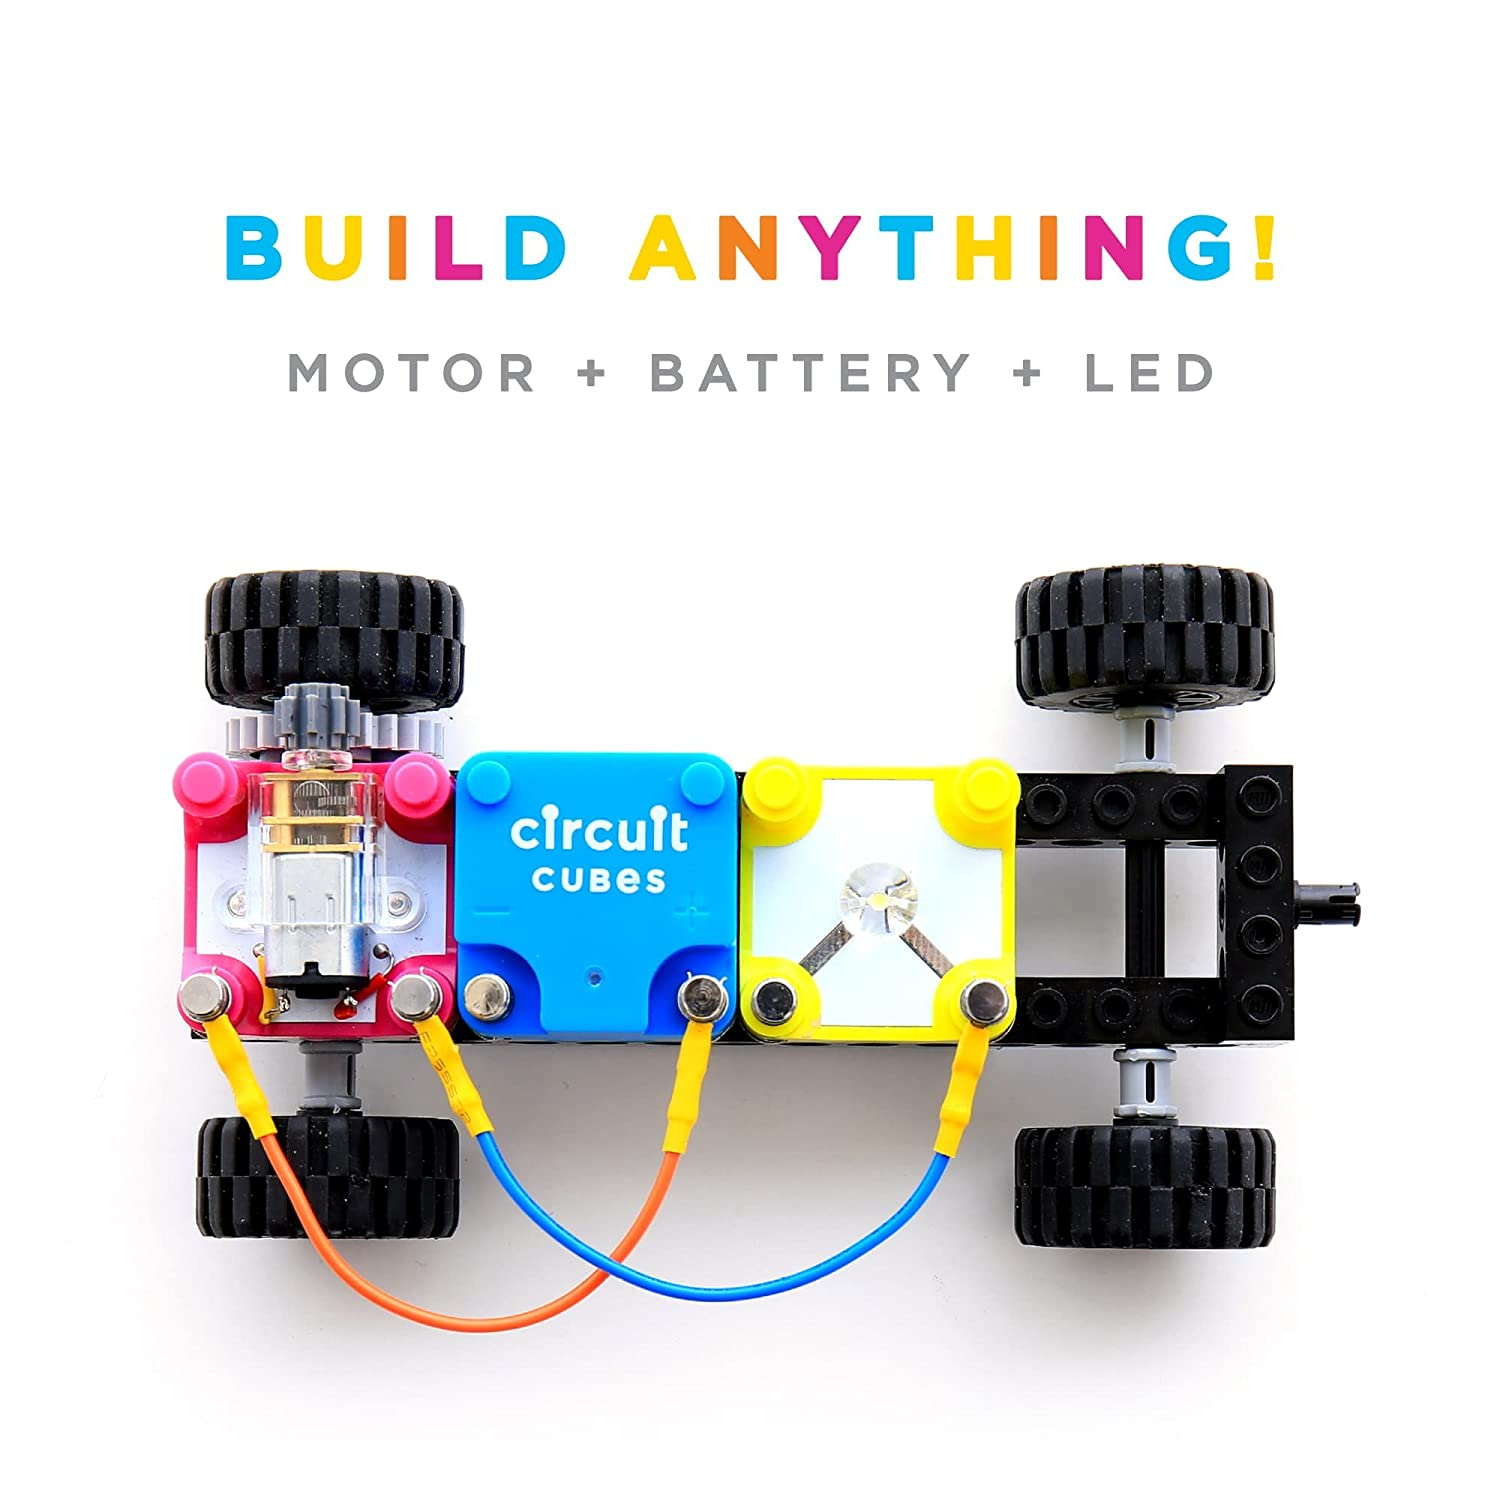 Multicolor Circuit Cubes Bright Lights Educational Stem Learning Toy Kit